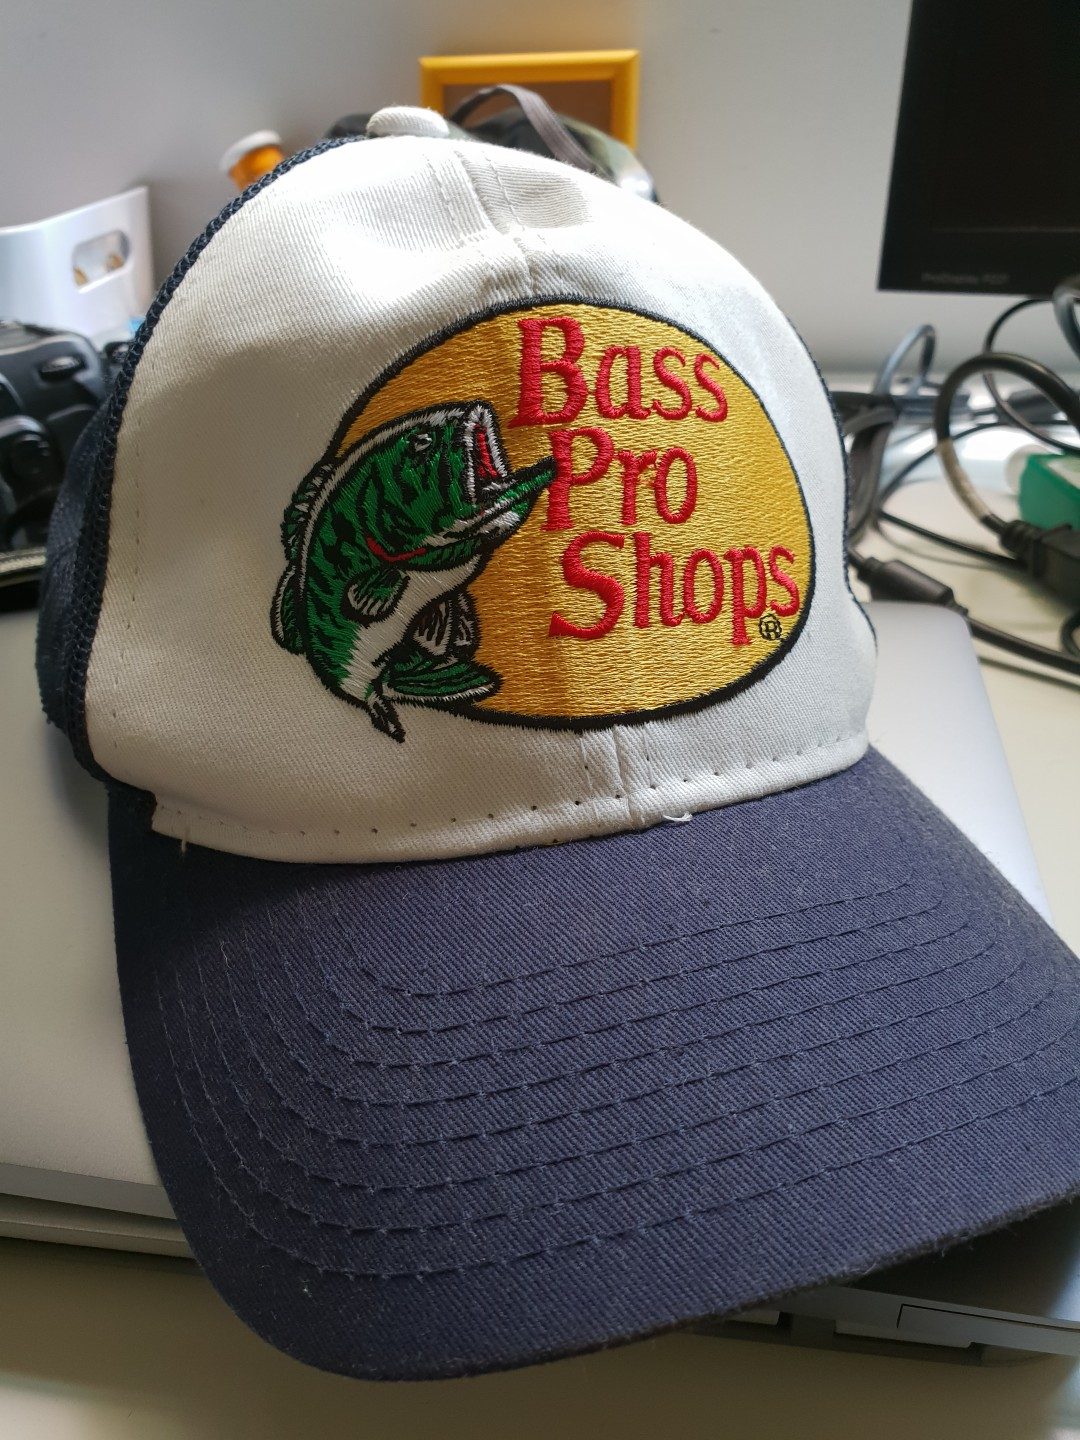 Bass Pro Shops Fishing Cap New!!